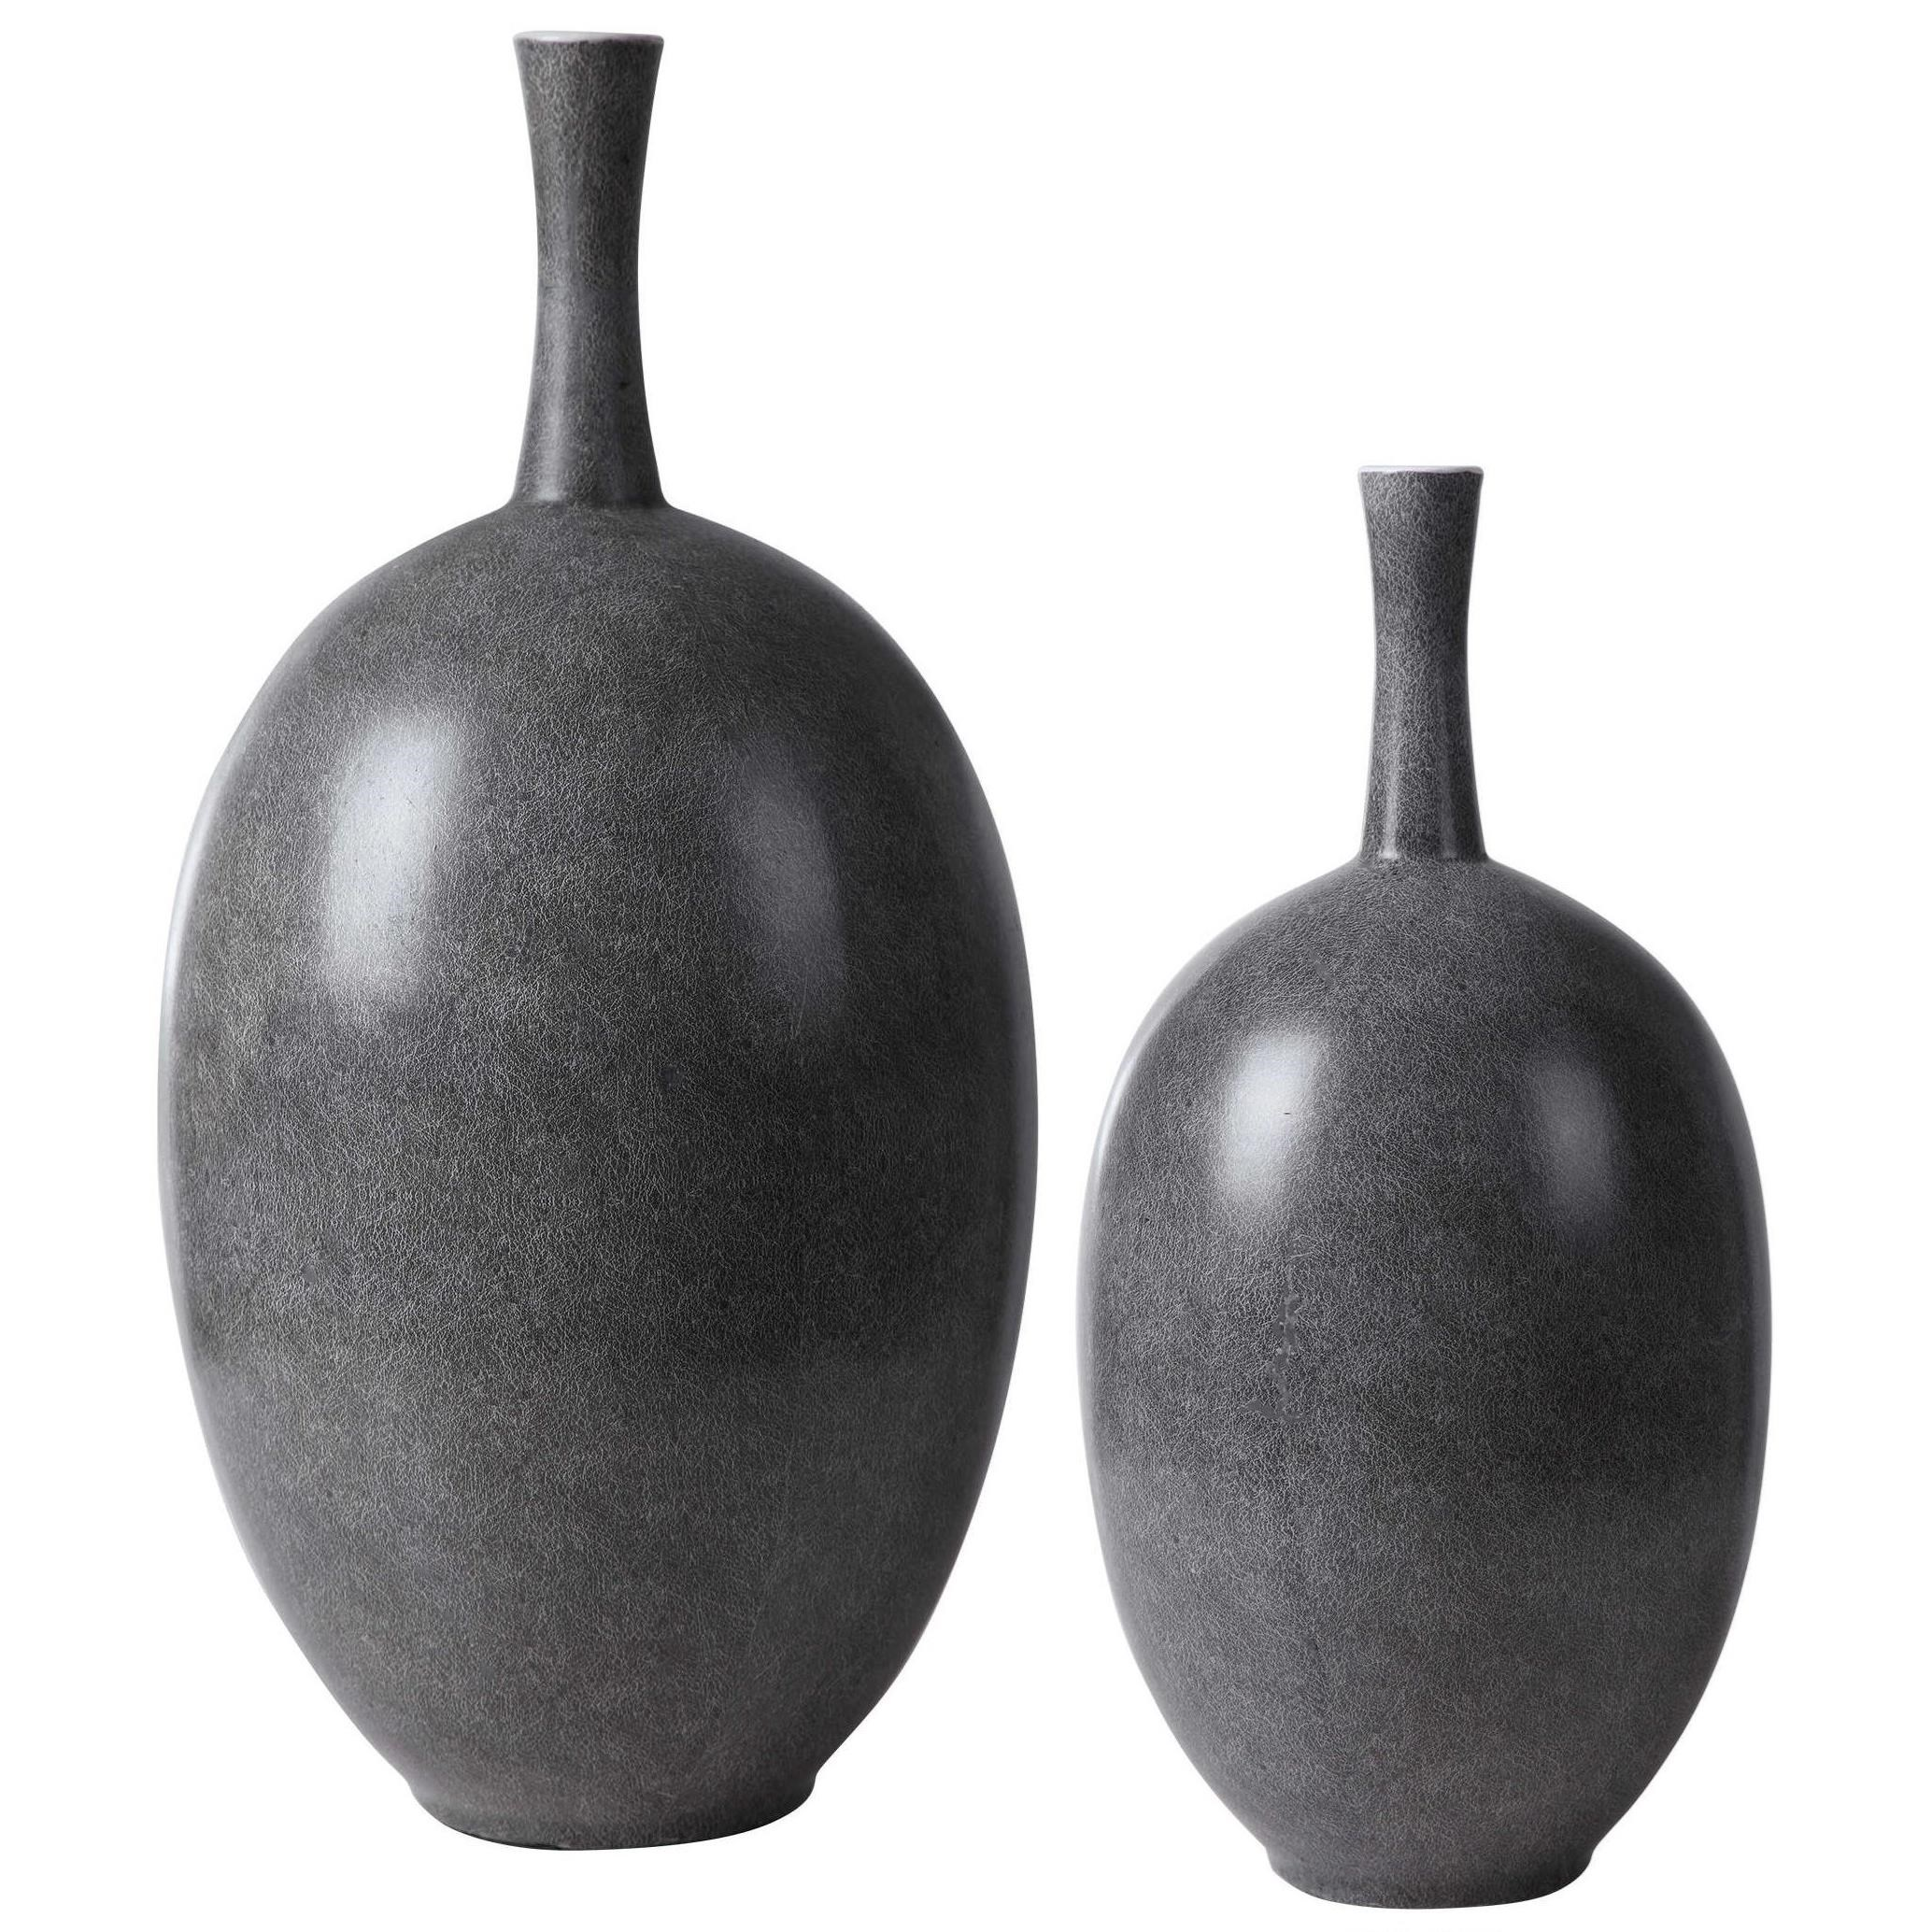 Accessories - Vases and Urns Riordan Modern Vases, S/2 by Uttermost at Suburban Furniture